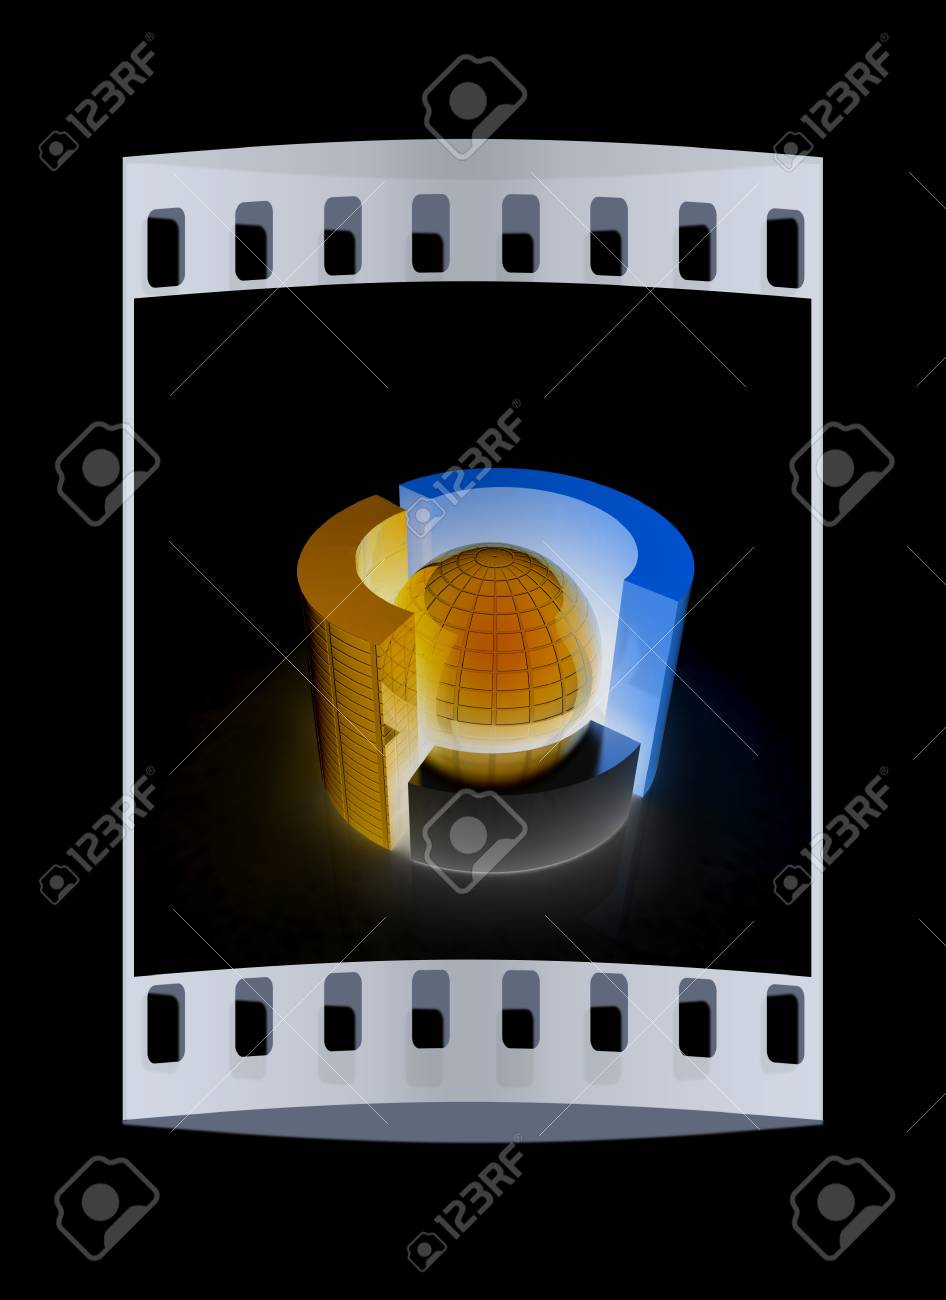 hight resolution of 3d circular diagram and sphere on black background the film strip stock photo 44728278